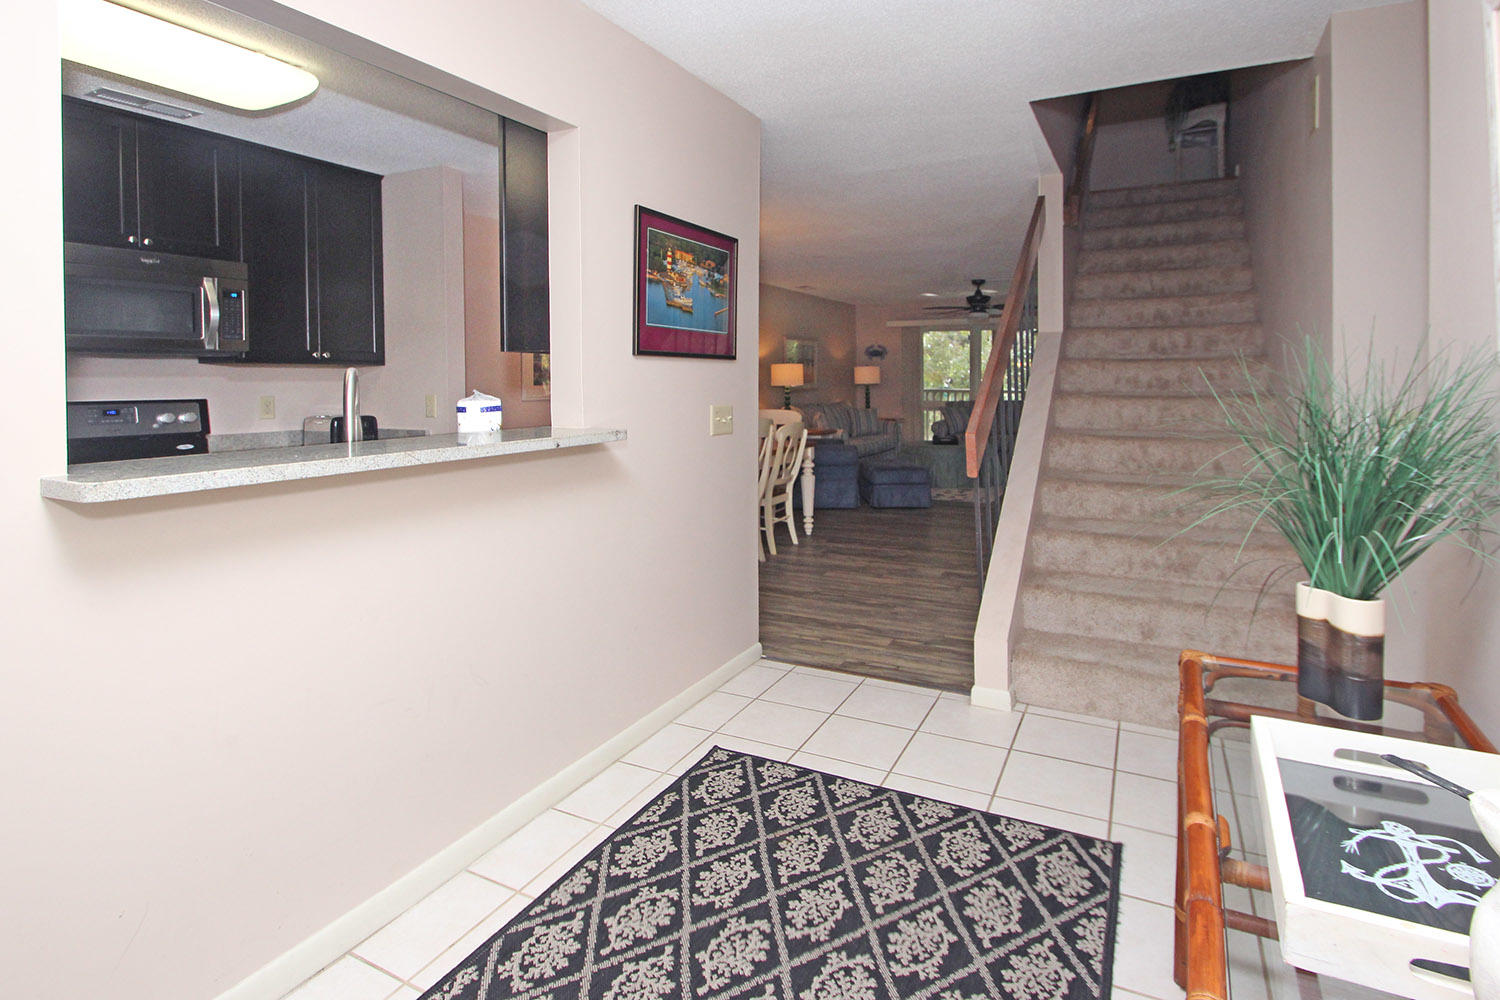 Foyer and stairway to bedrooms